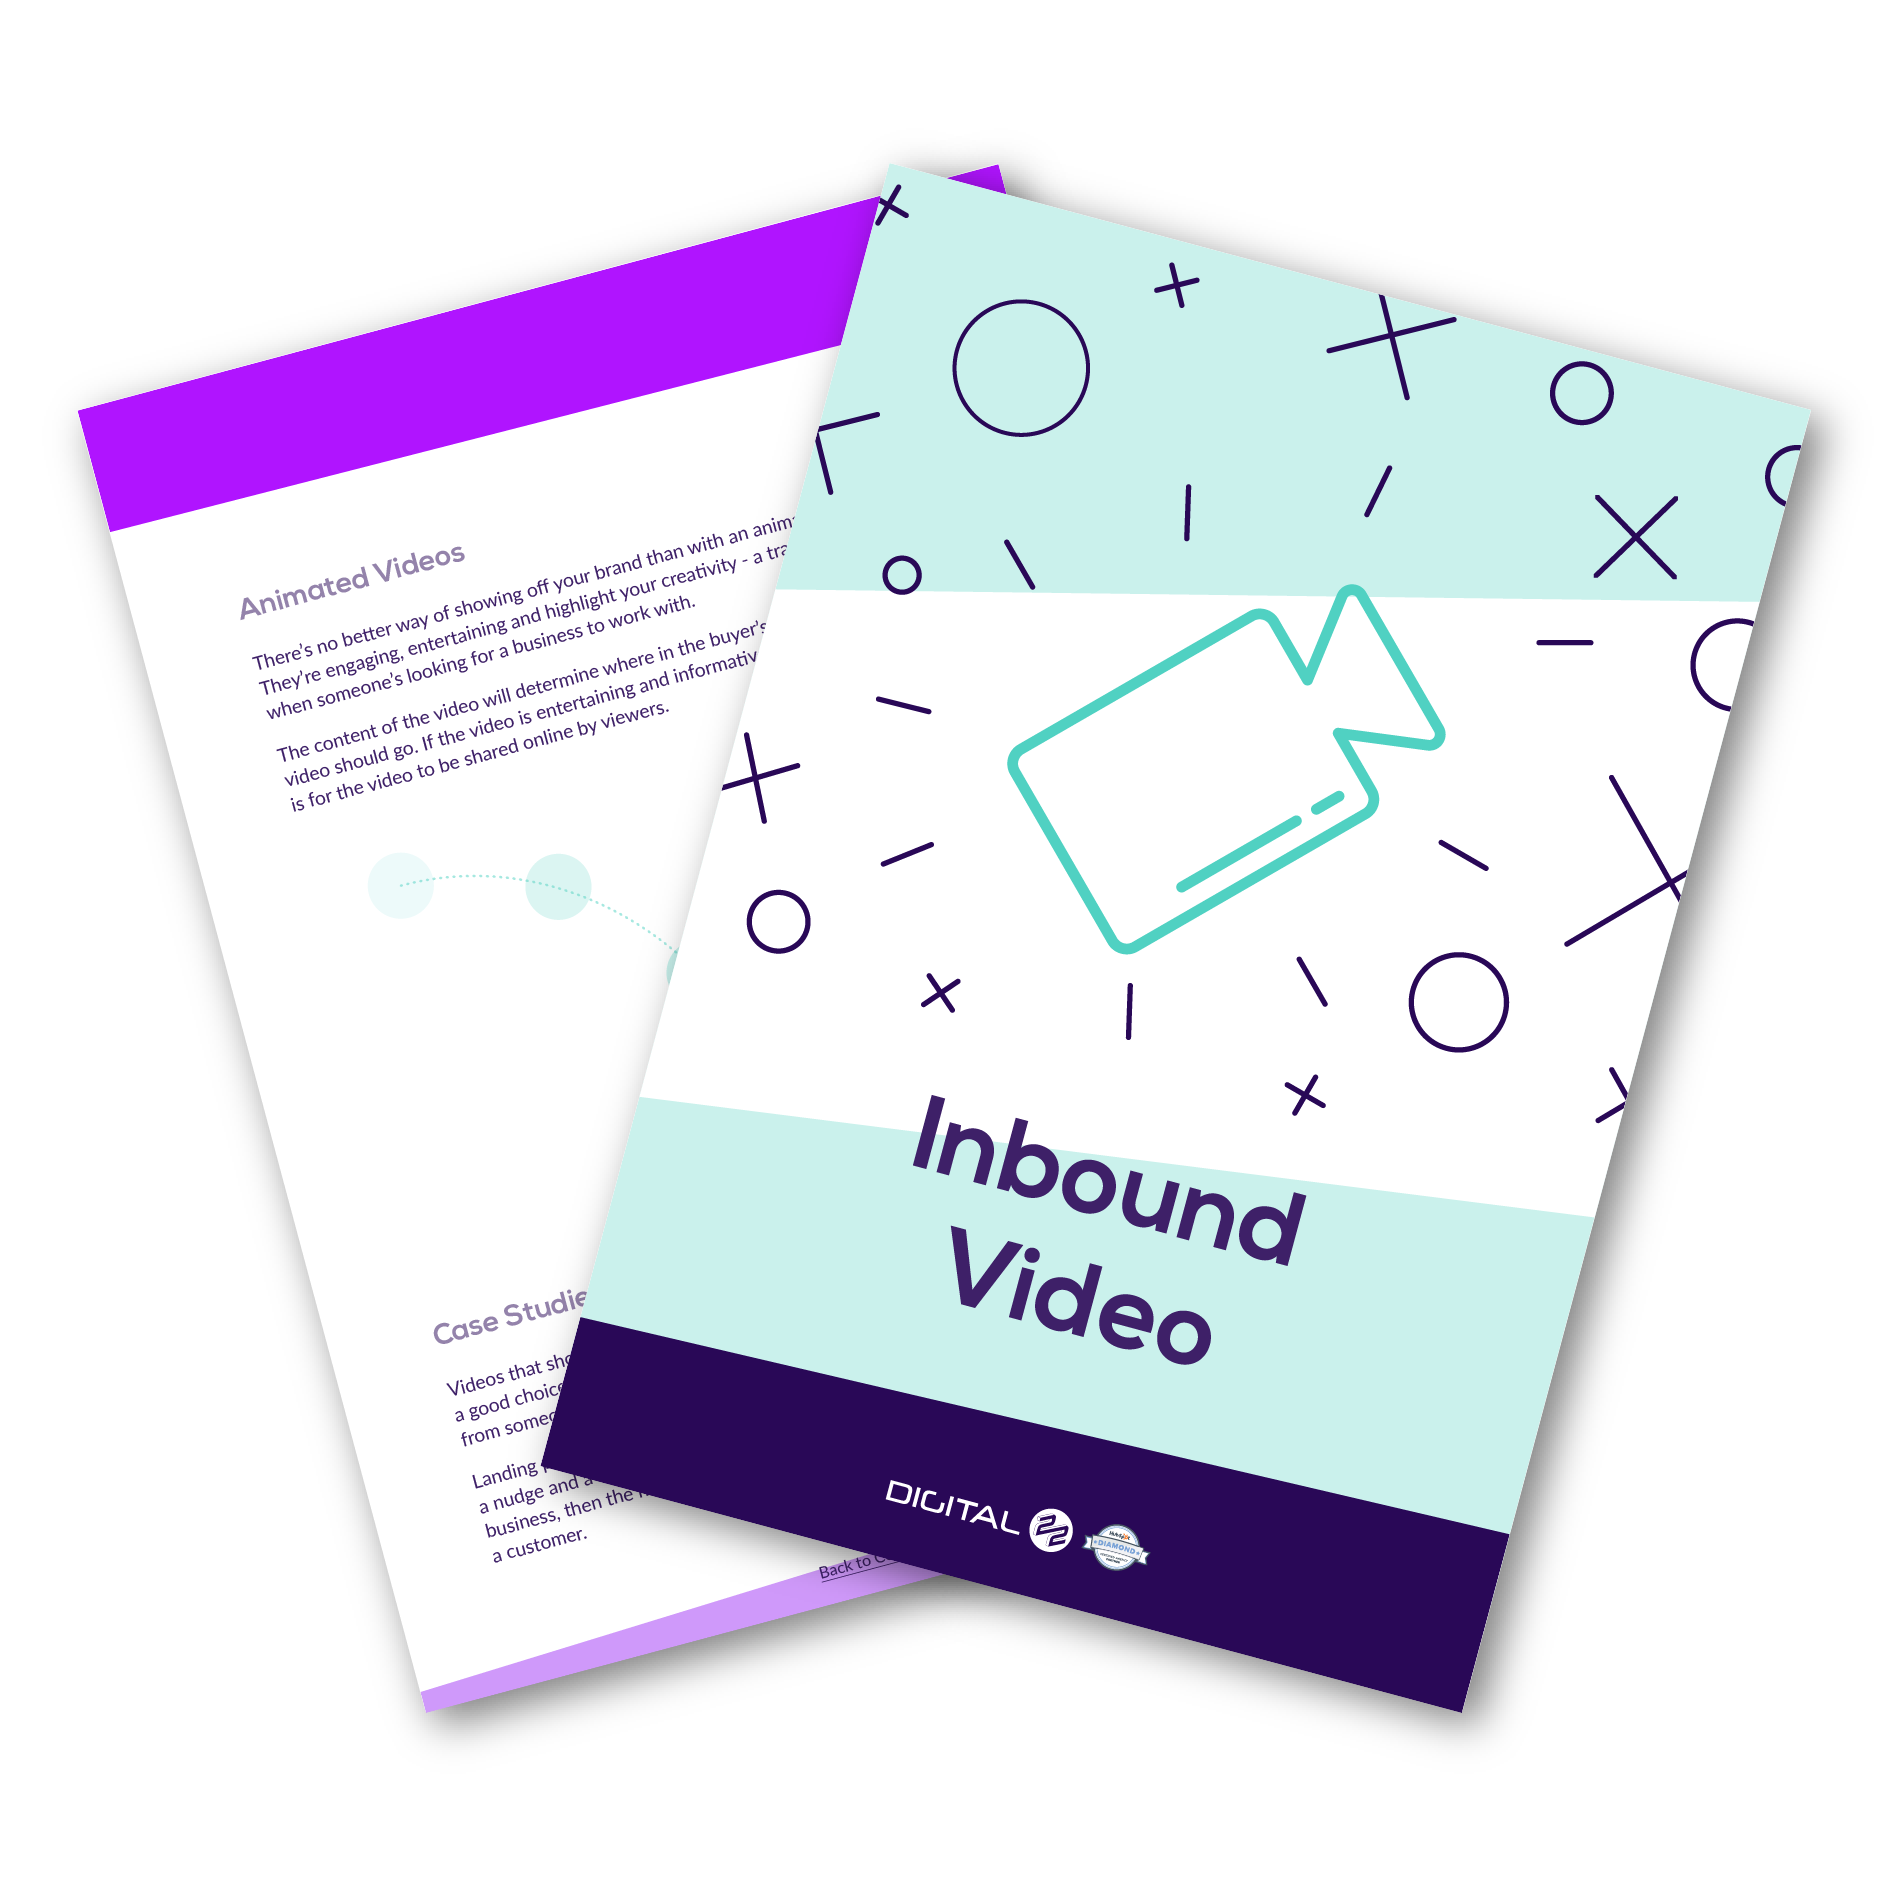 Inbound Video Guide visual